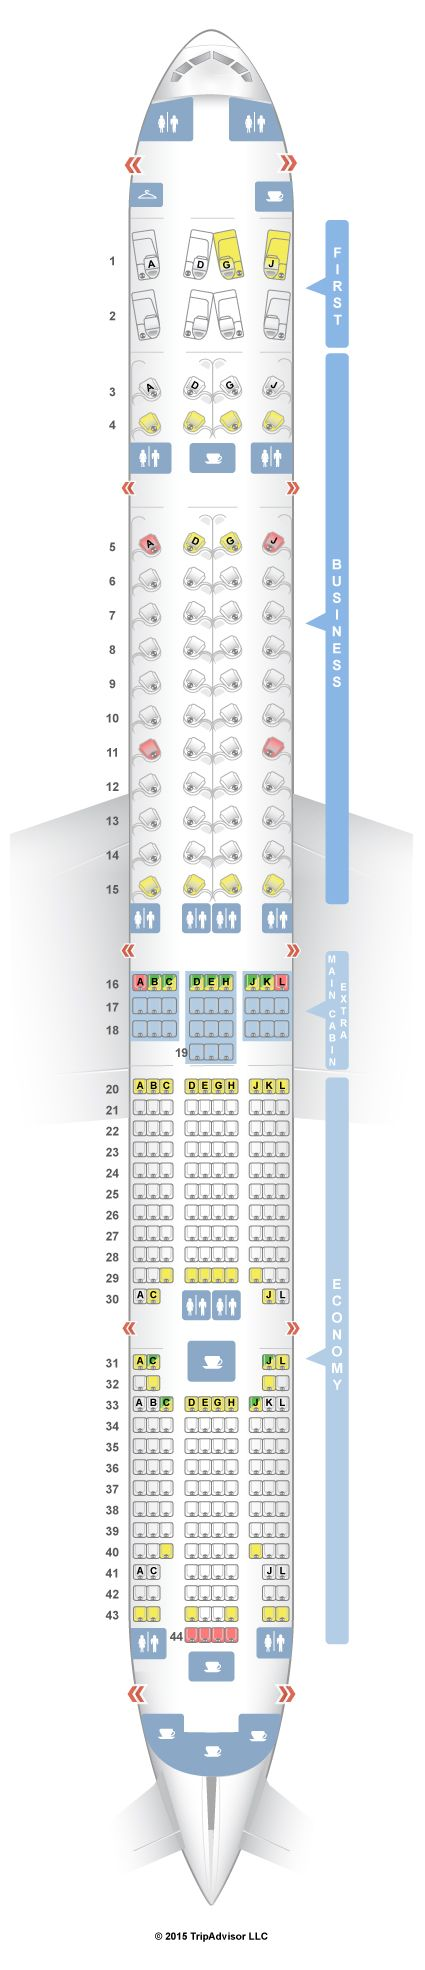 1000 ideas about boeing 777 300er seating on pinterest for Plan cabine 777 300er